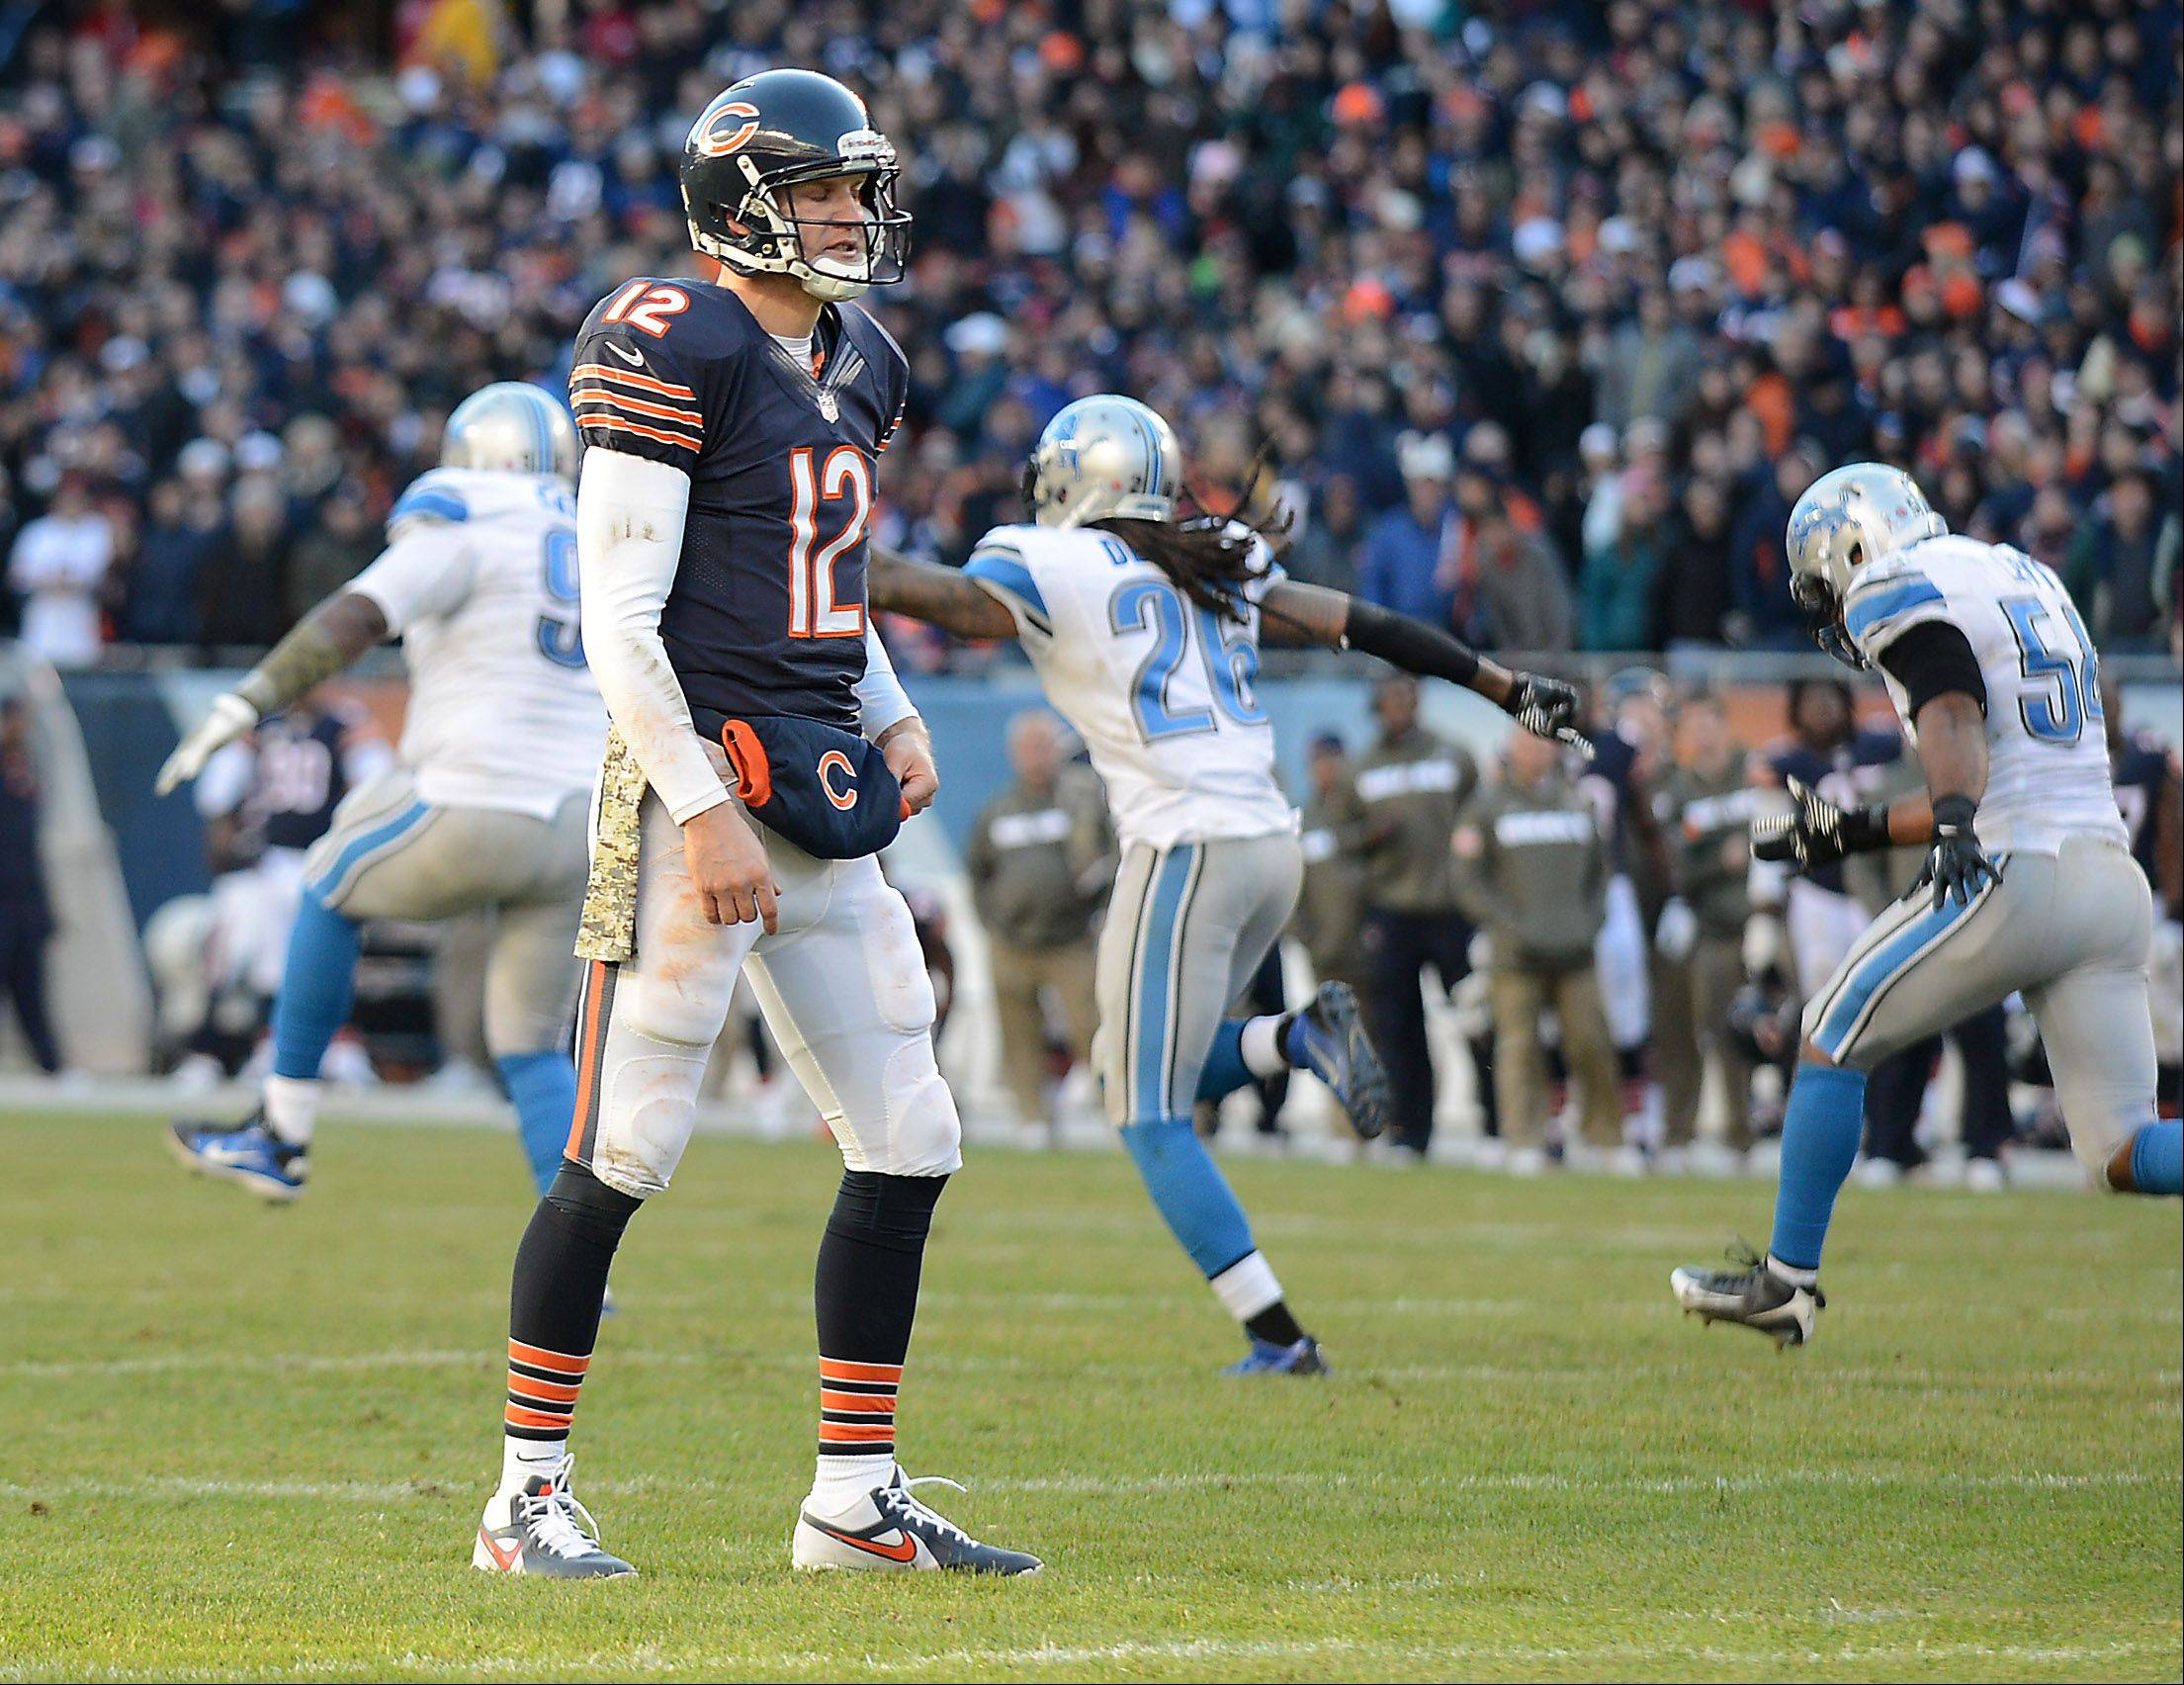 Images: Bears vs. Lions